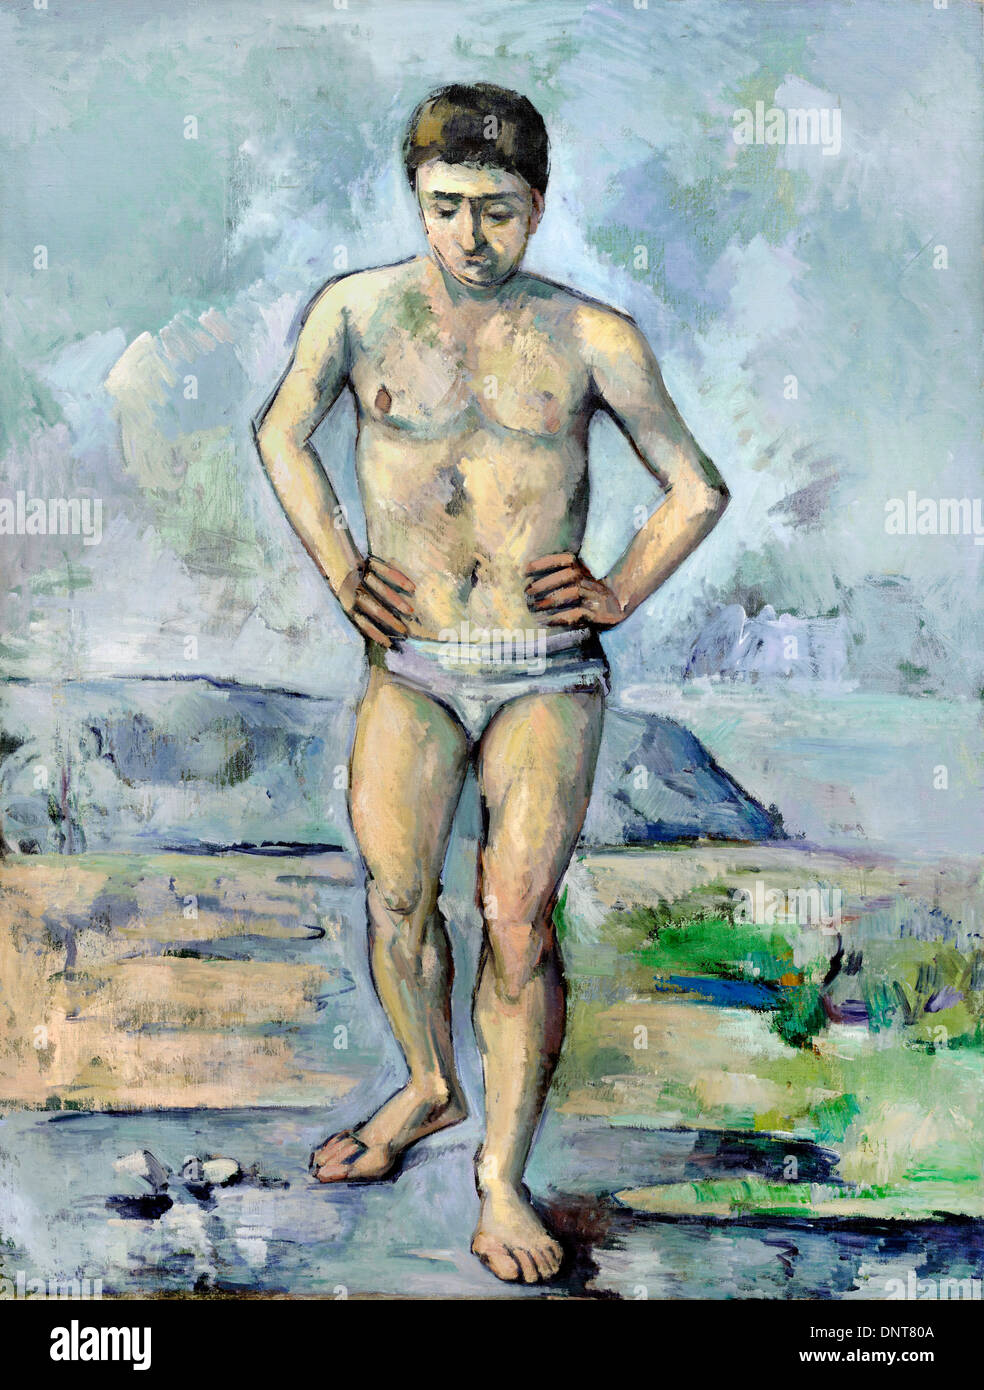 Paul Cezanne, The Bather 1885 Oil on canvas. Museum of Modern Art, New York City, USA. - Stock Image